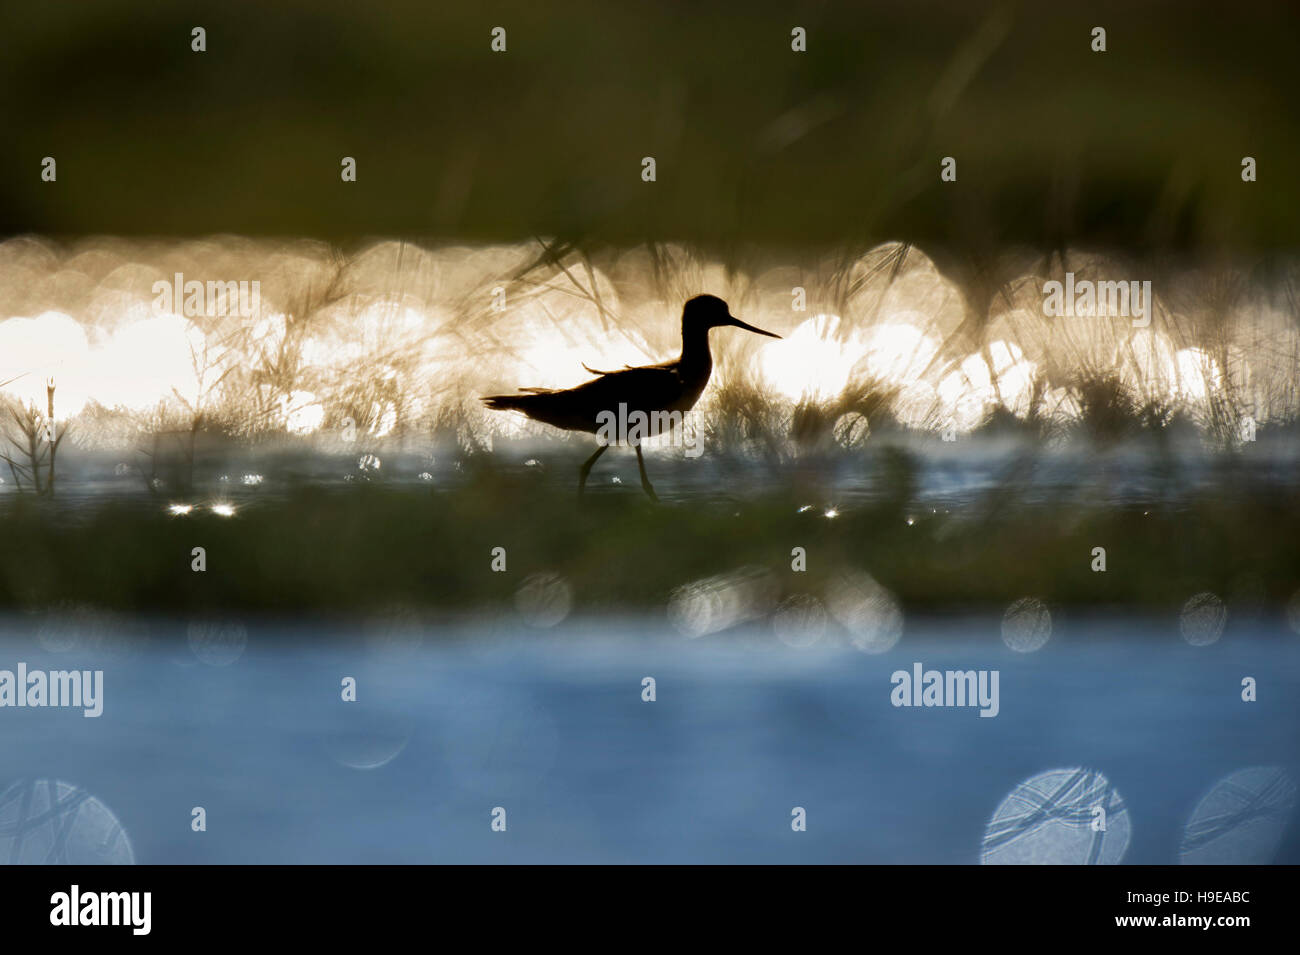 A Greater Yellowlegs is silhouetted against the reflection of the bright sun on the water on a sunny day. - Stock Image